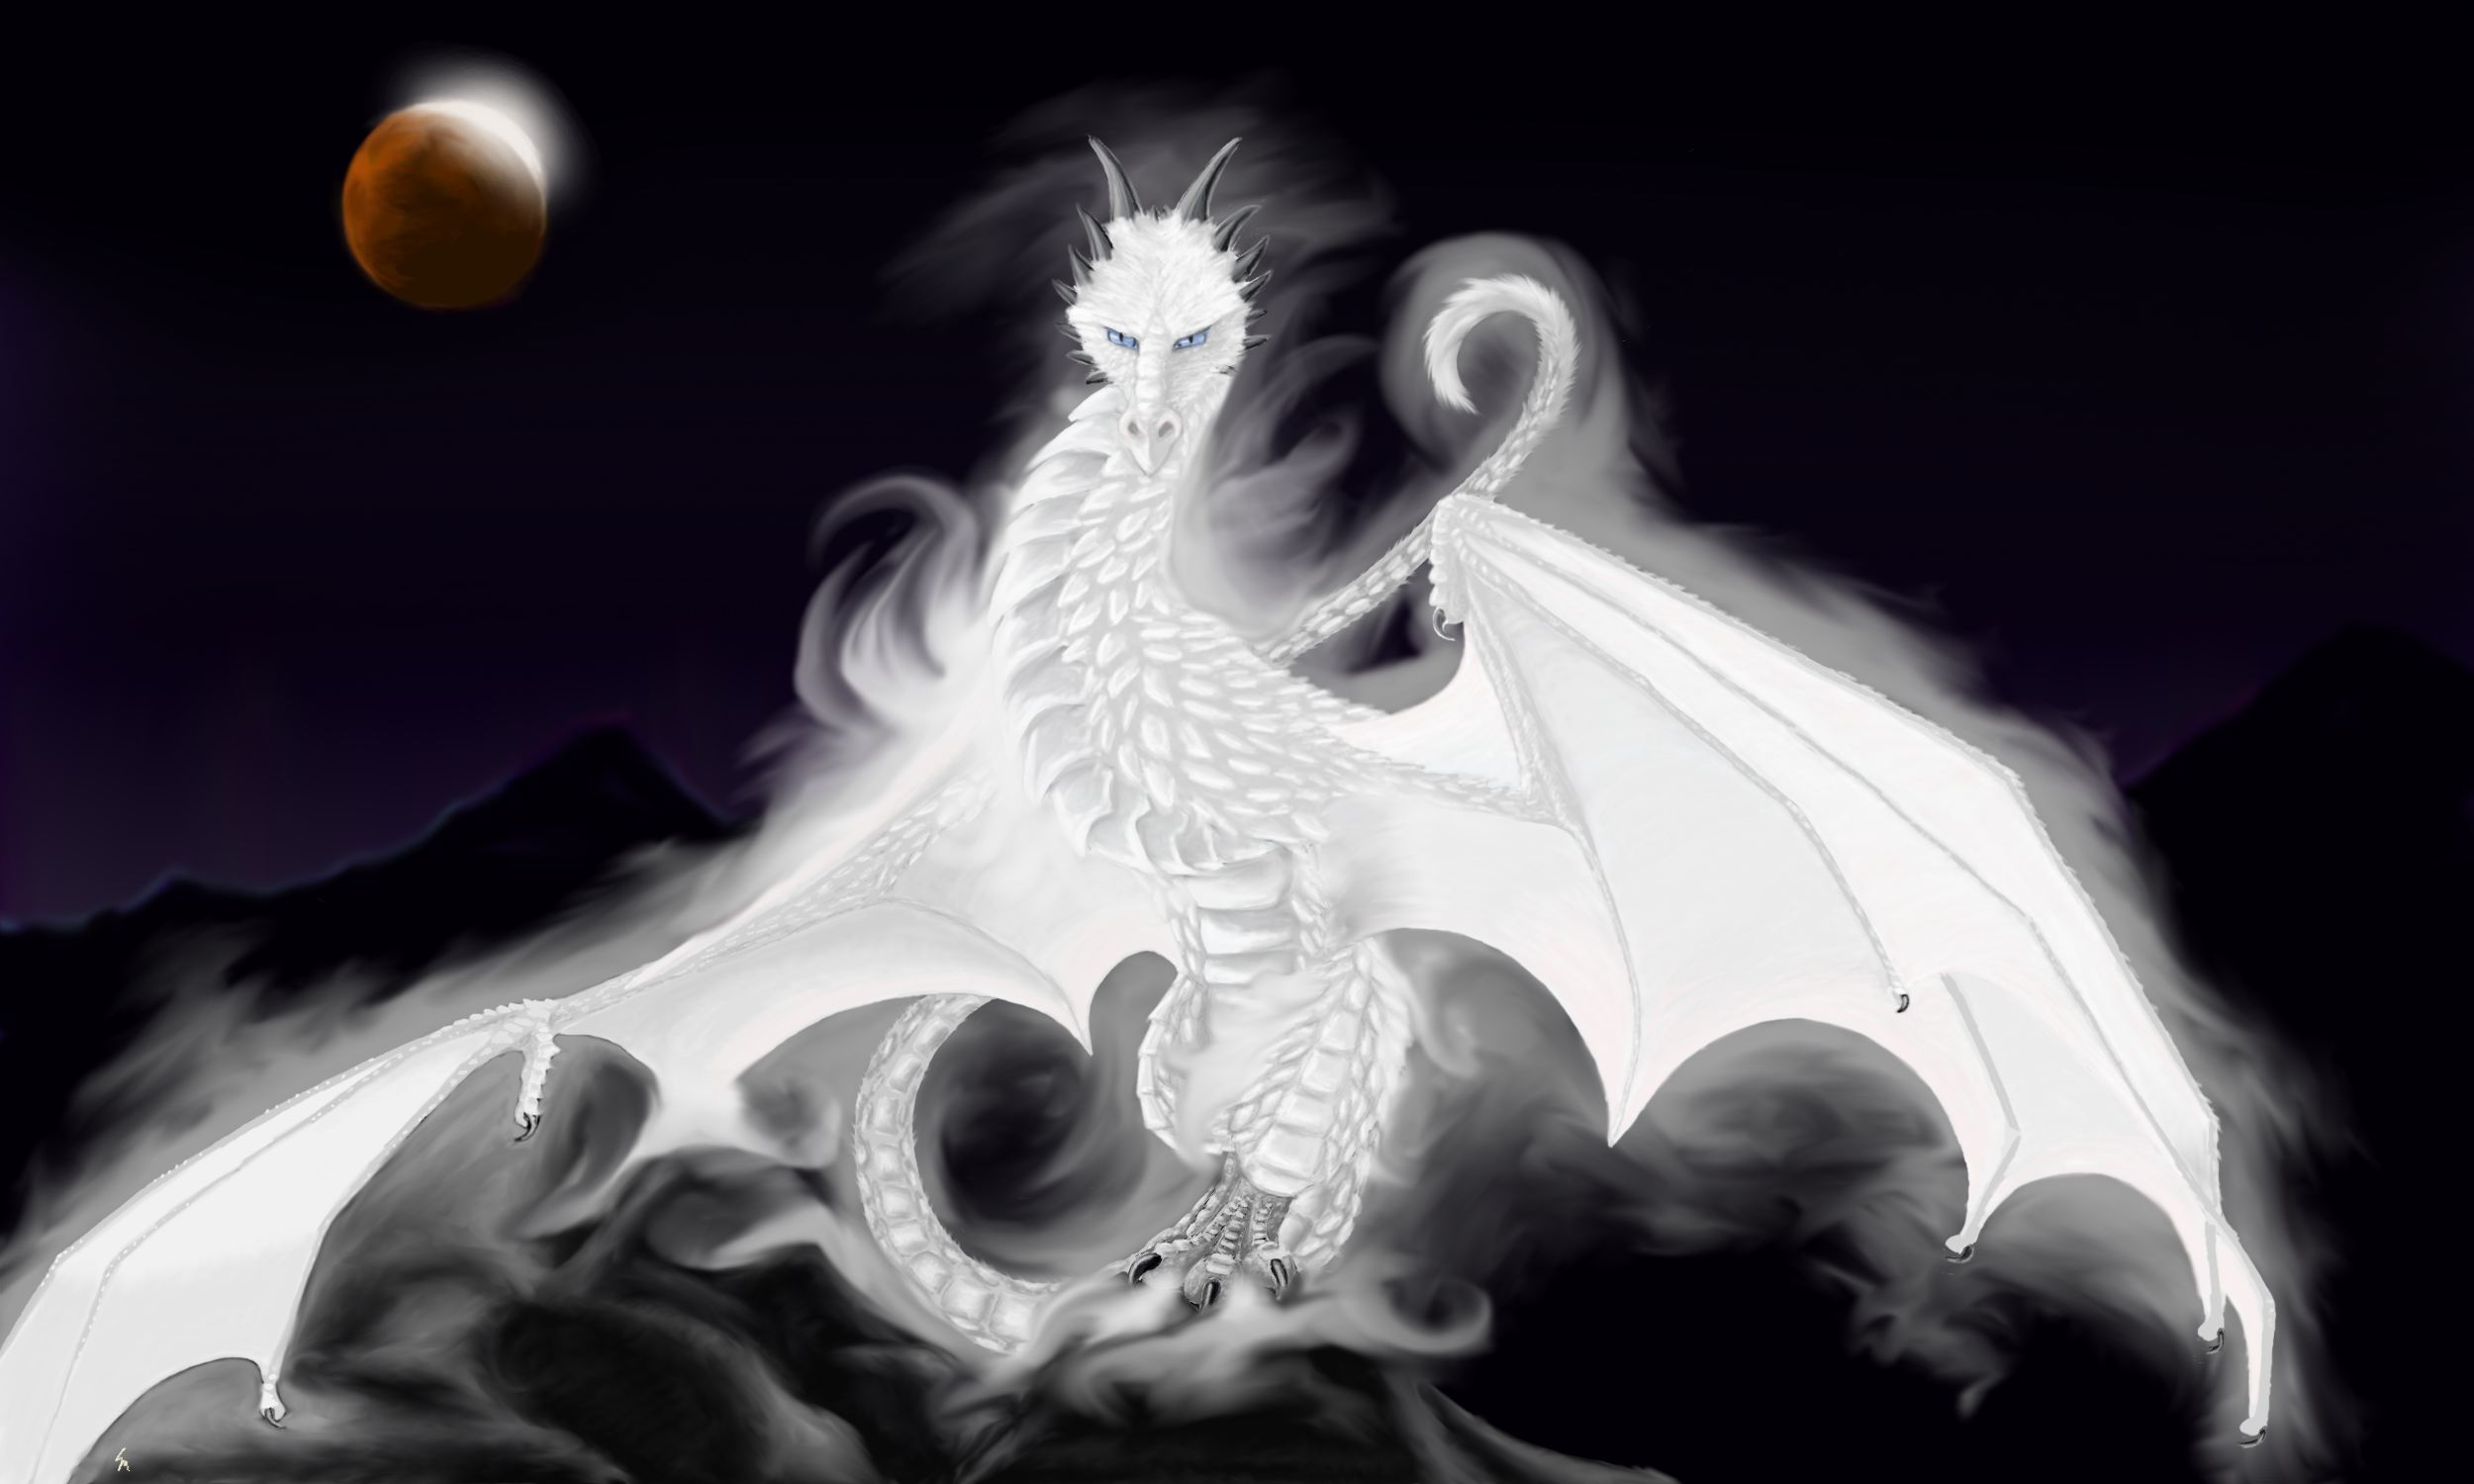 Dragon Spirit By Dovahkiinfalconer On DeviantArt